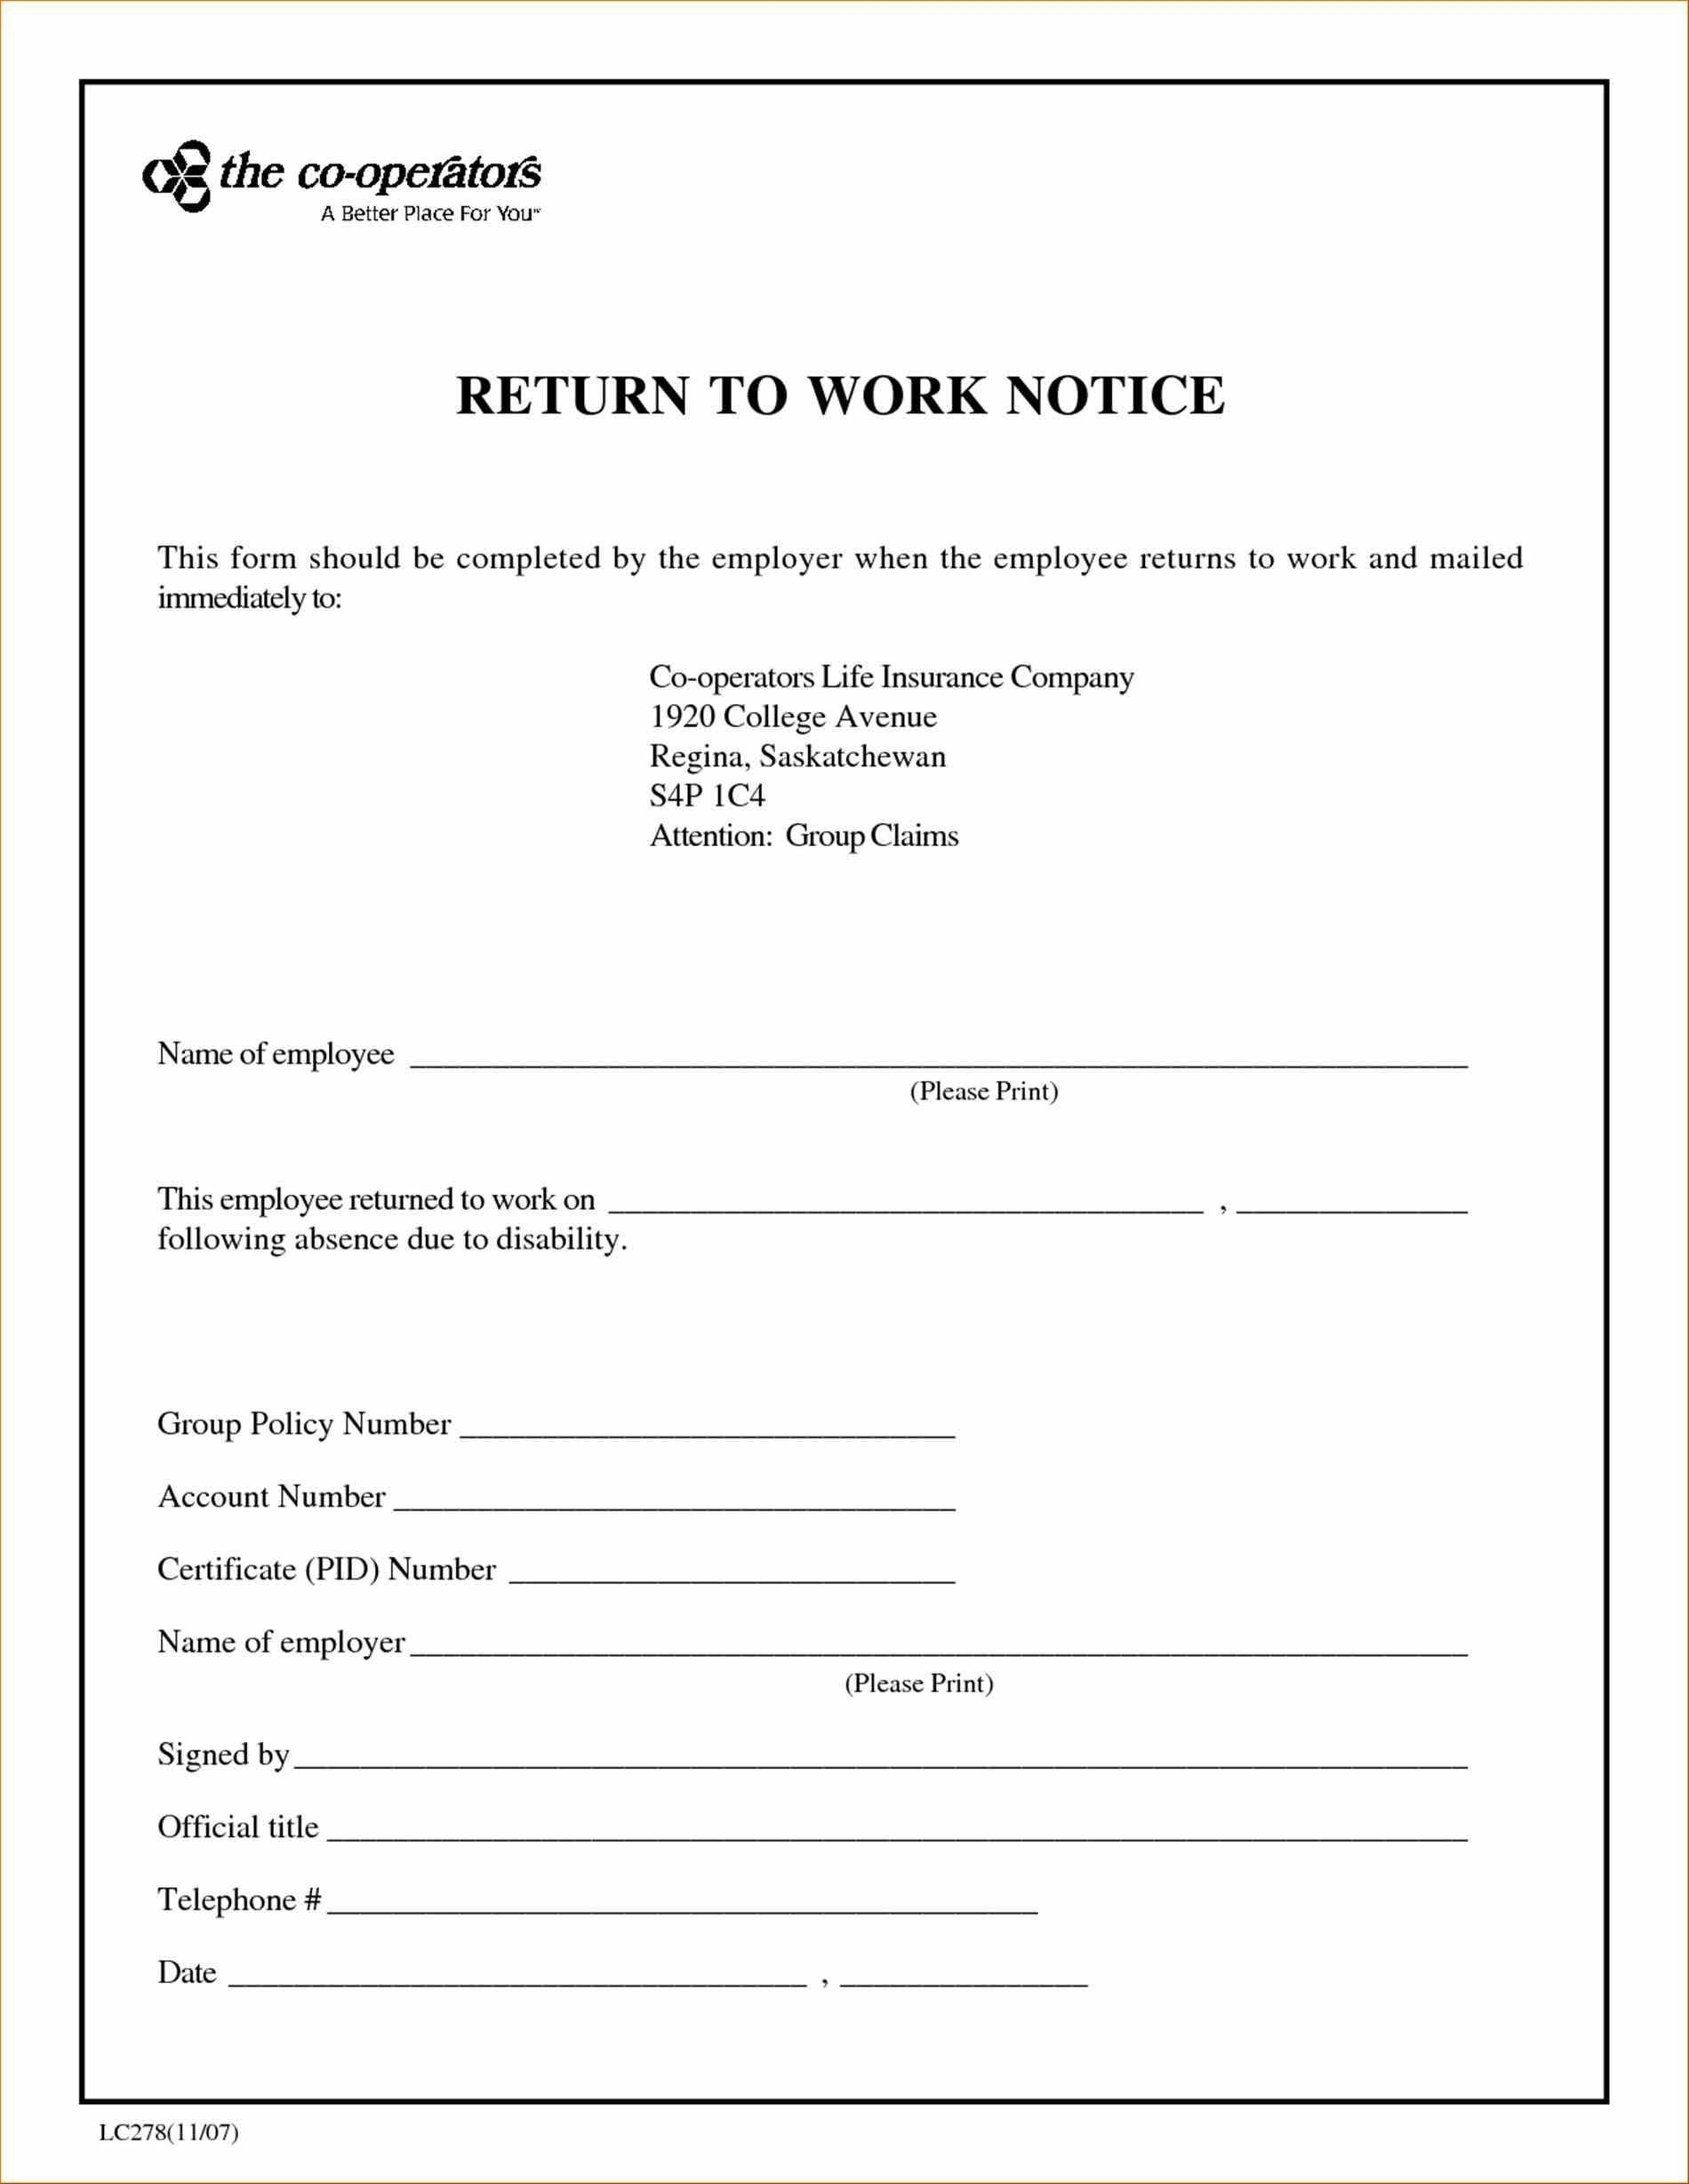 S Doctor Notes Templates Note Templates Onlinestopwatchcom Pin - Printable Fake Doctors Notes Free